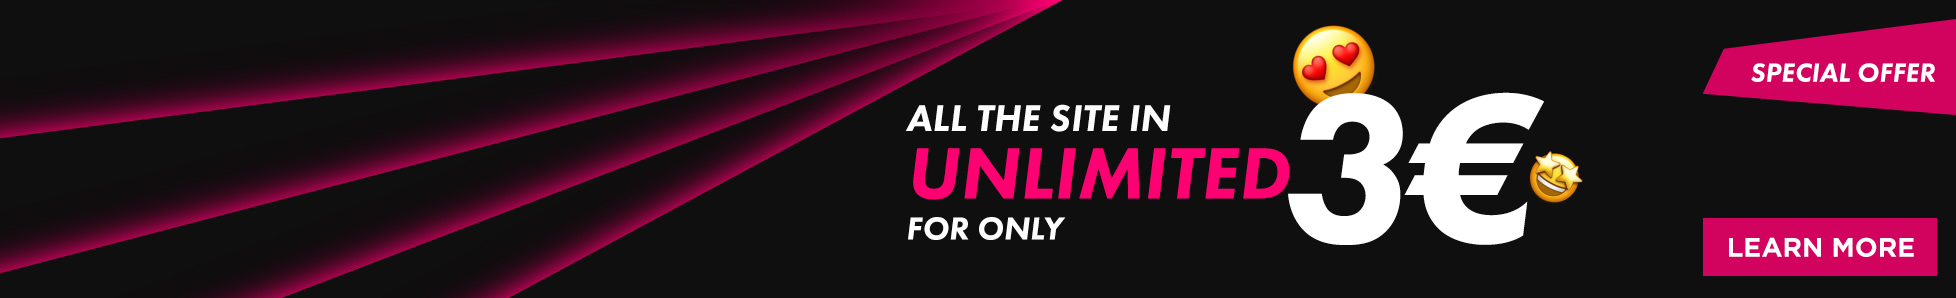 All porn stars of Jacquie and Michel in unlimited for 24h for only € 3